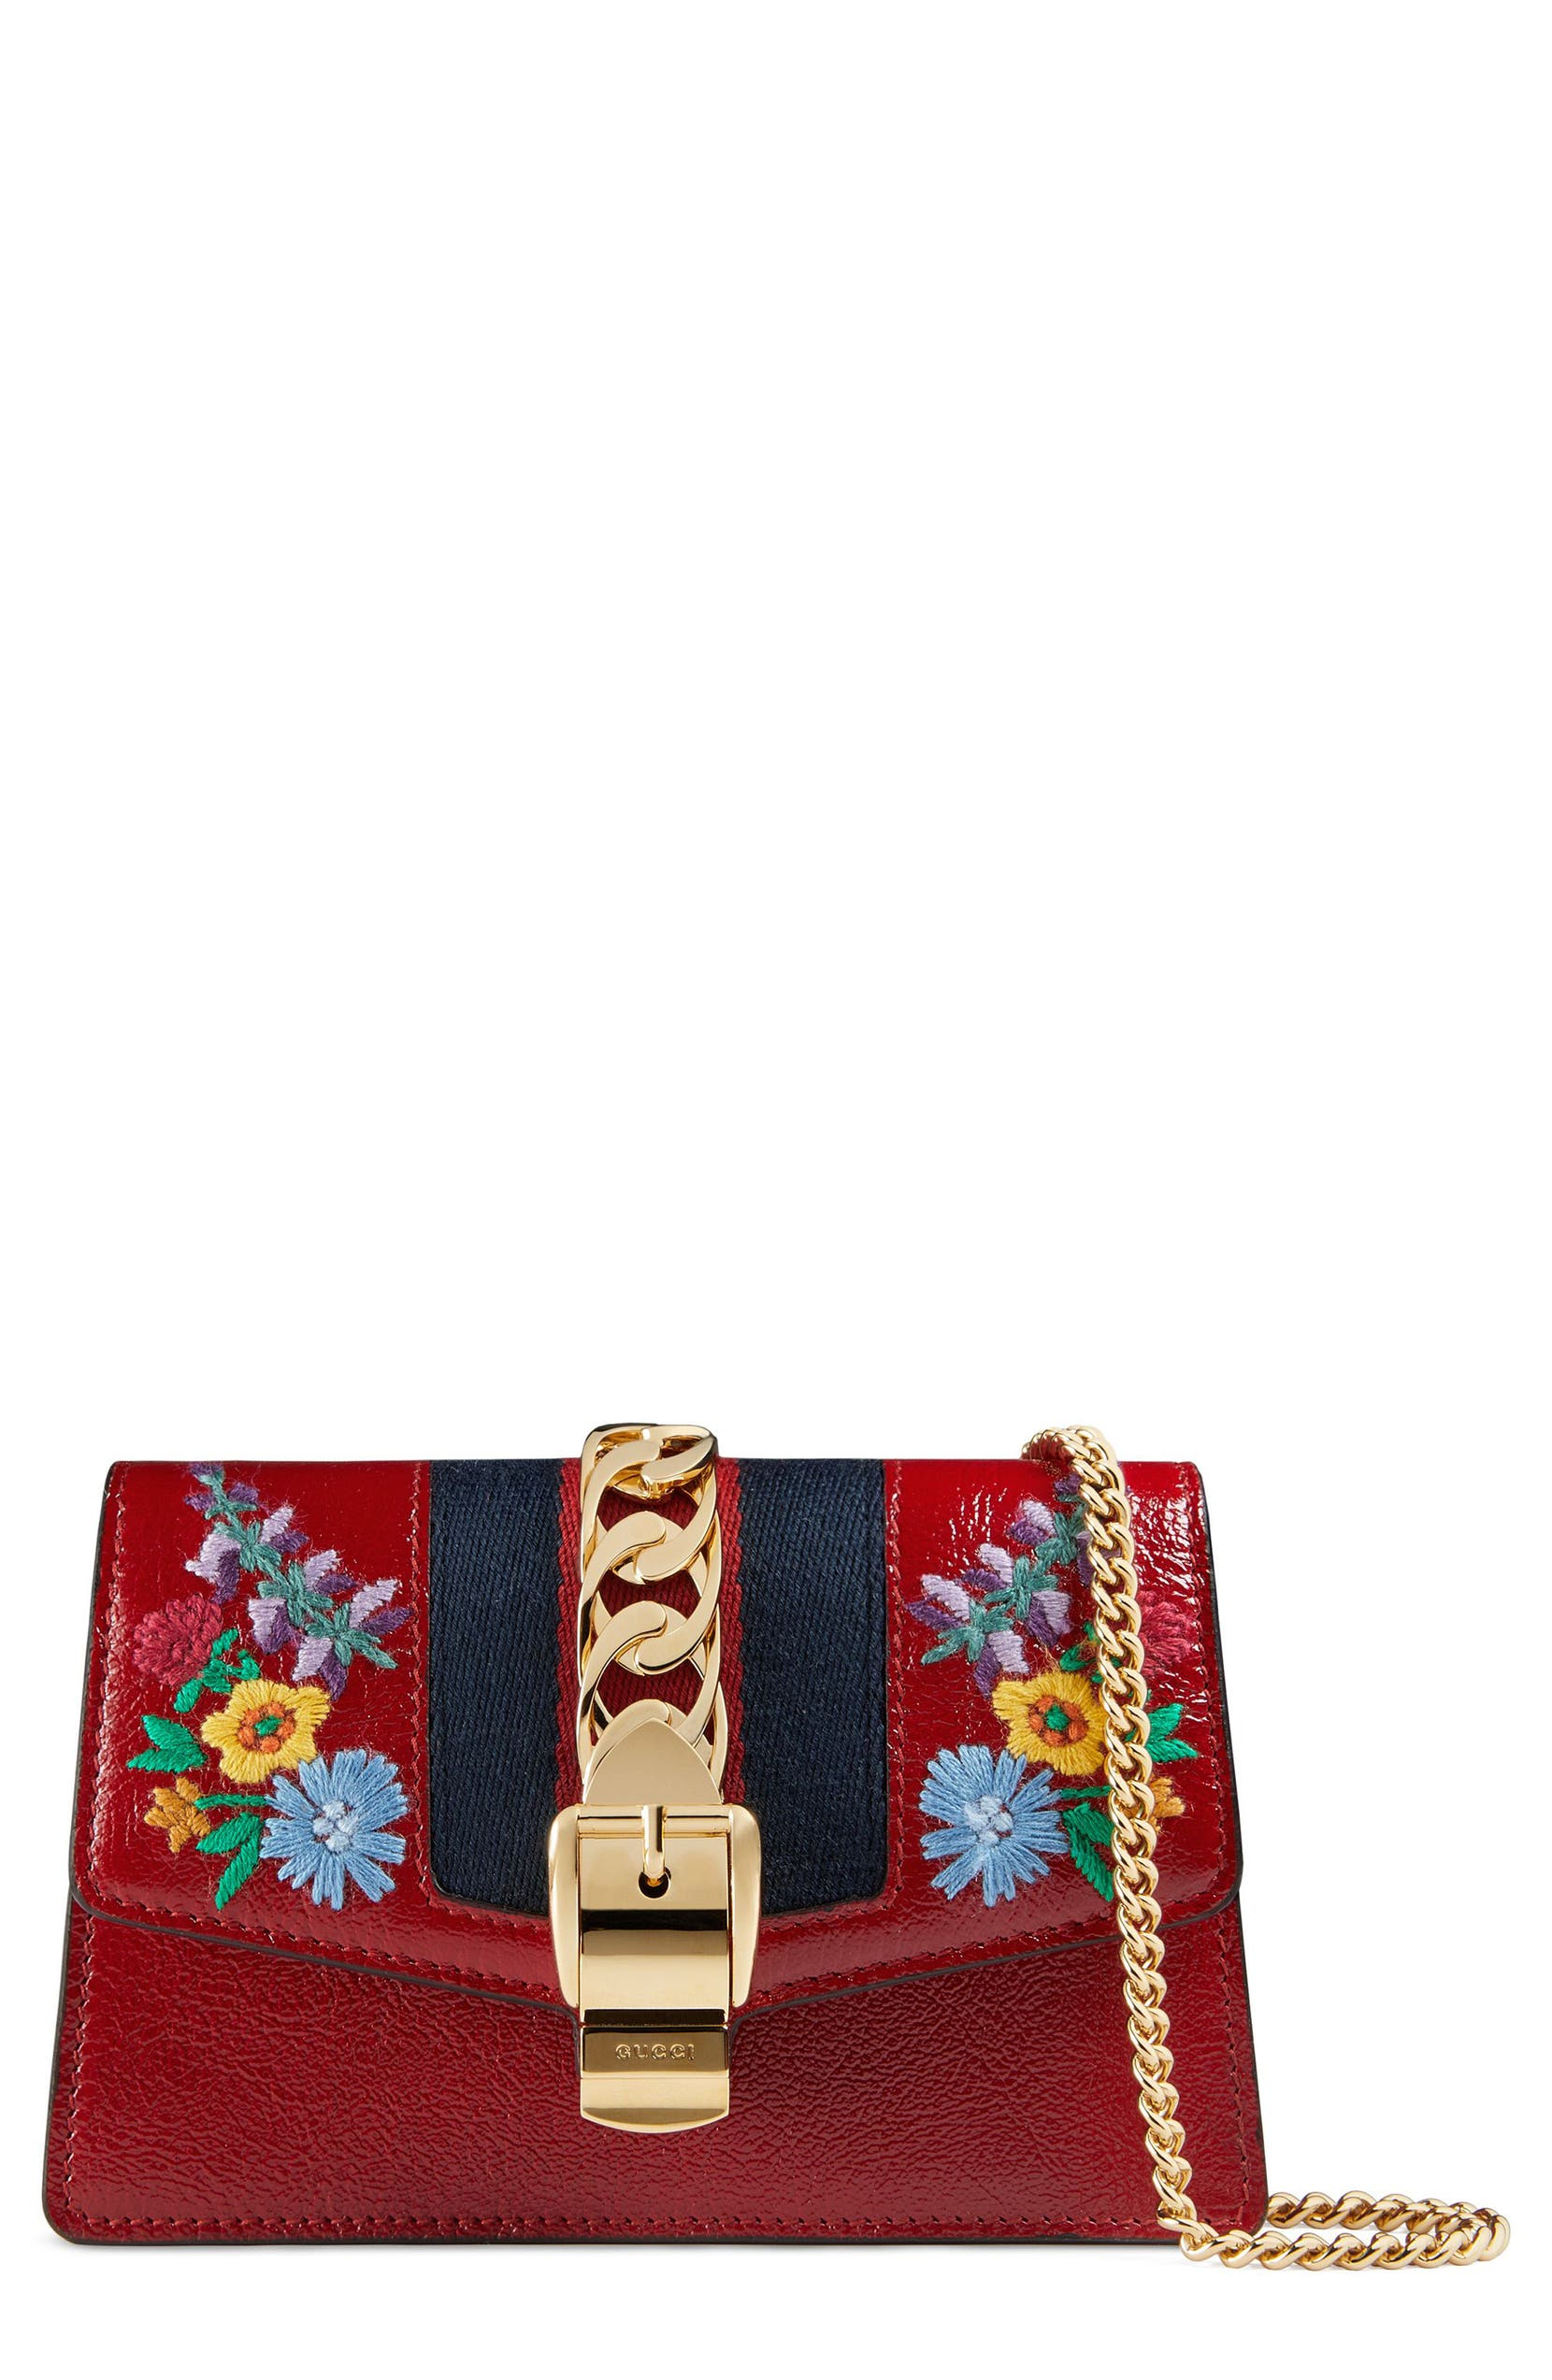 1cdfb16e35e5 Gucci Super Mini Sylvie Embroidered Chain Wallet with Hook | Nordstrom